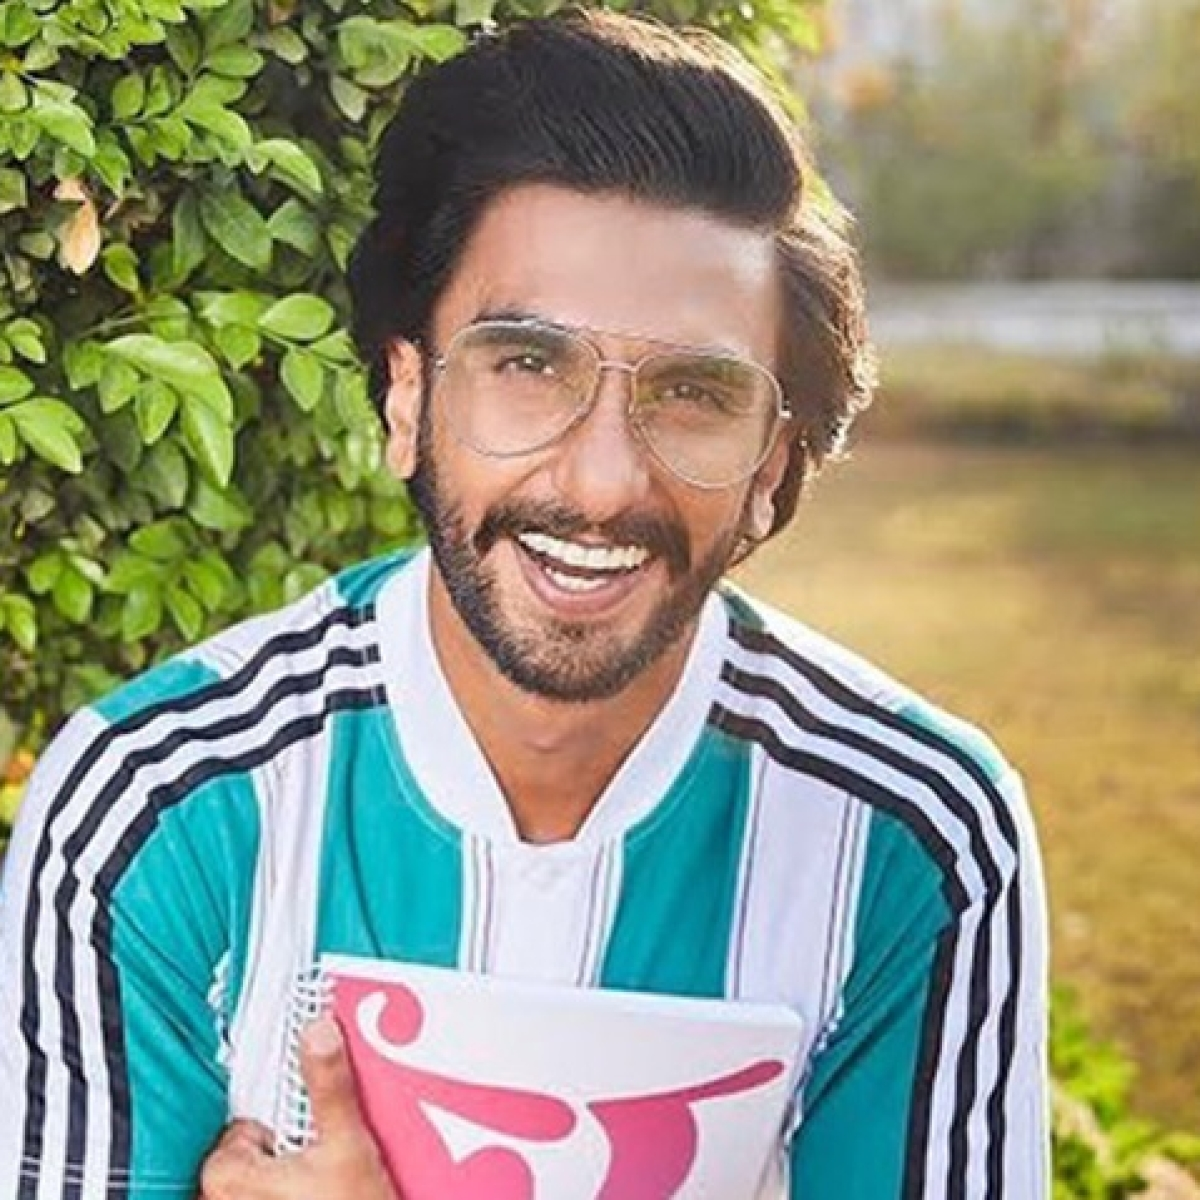 Ranveer Singh heads to Gujarat to shoot second schedule of Jayeshbhai Jordaar